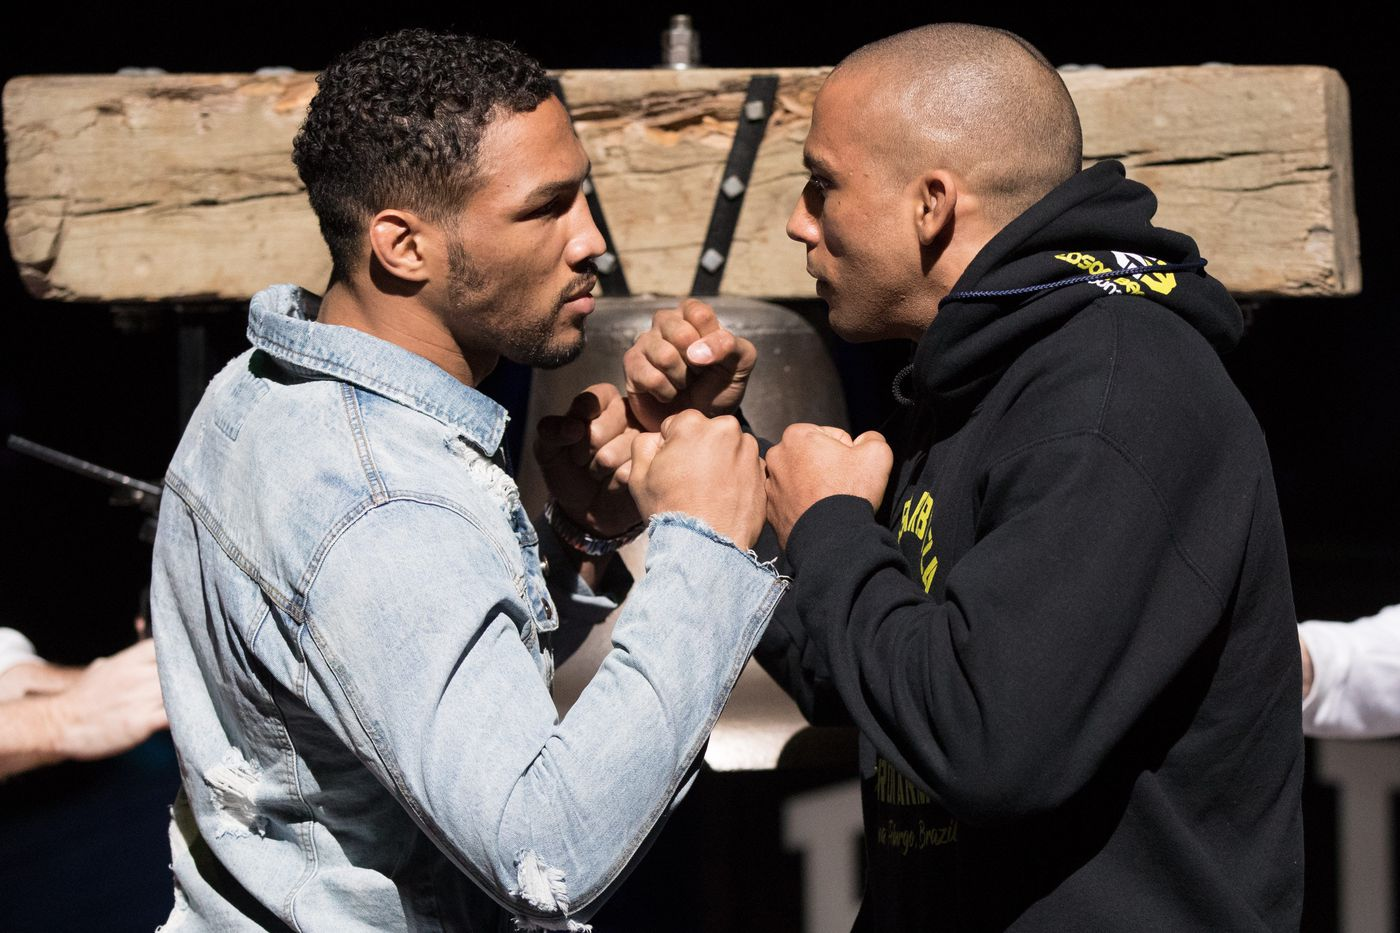 Ufc 128 fight card betting odds jersey stakes betting on sports